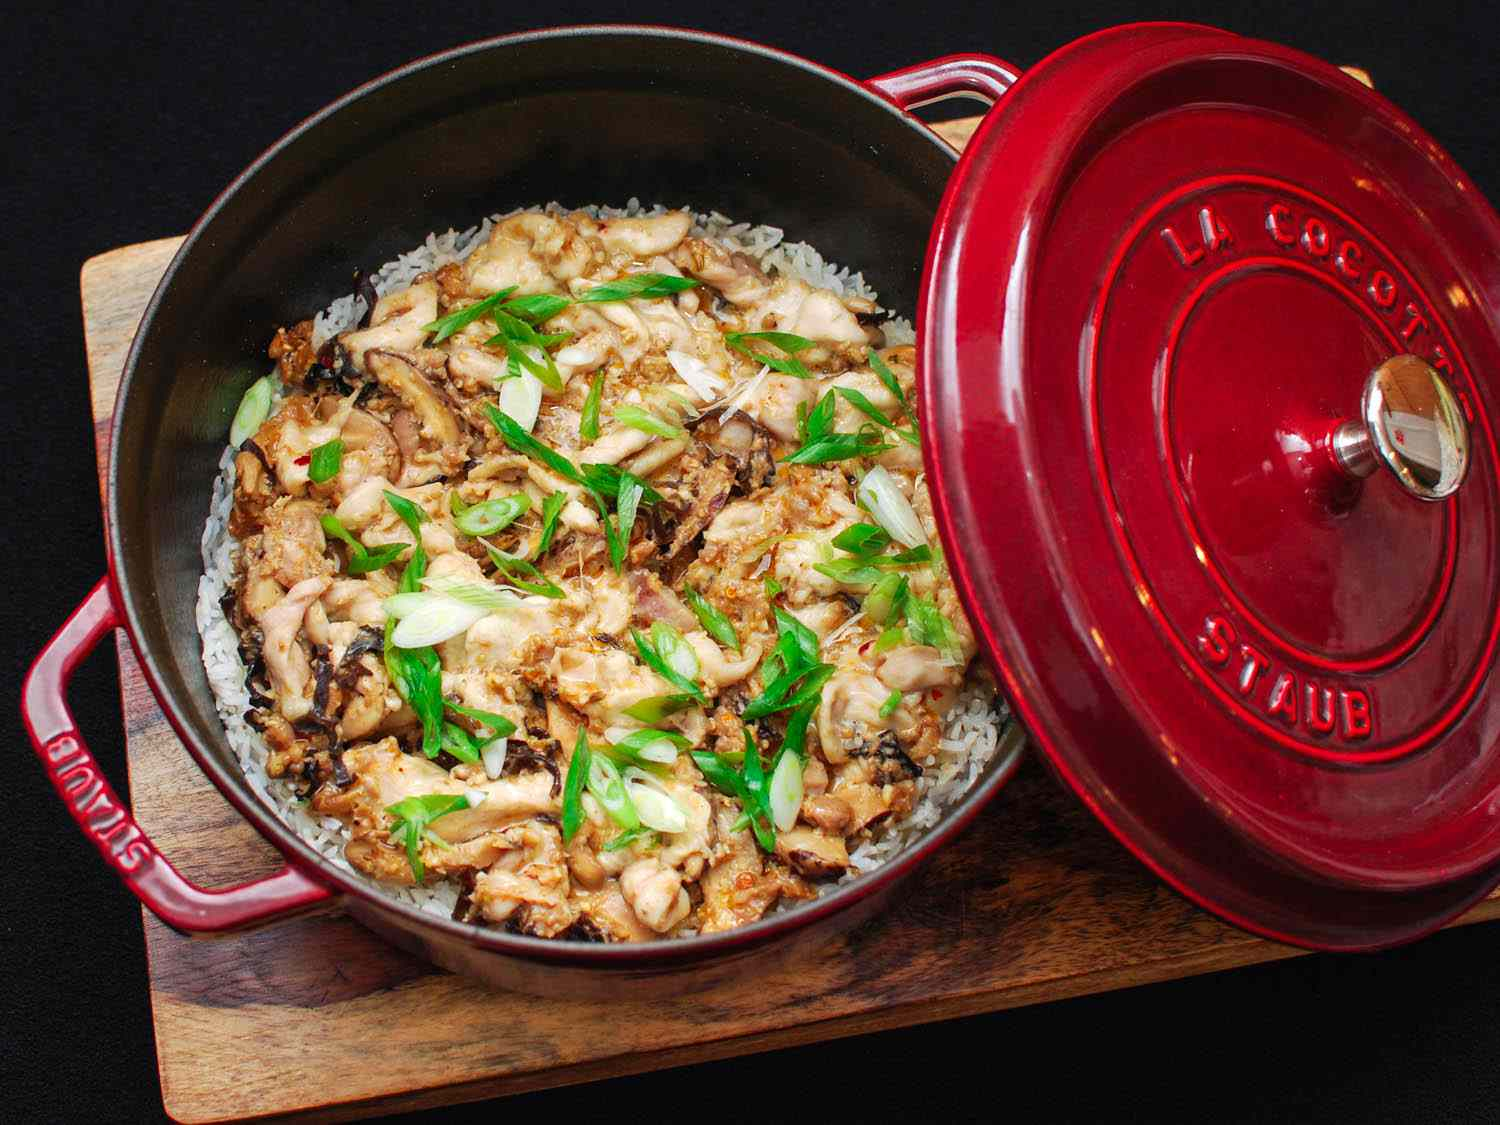 Clay Pot Rice With Spicy Sausage and Mushrooms